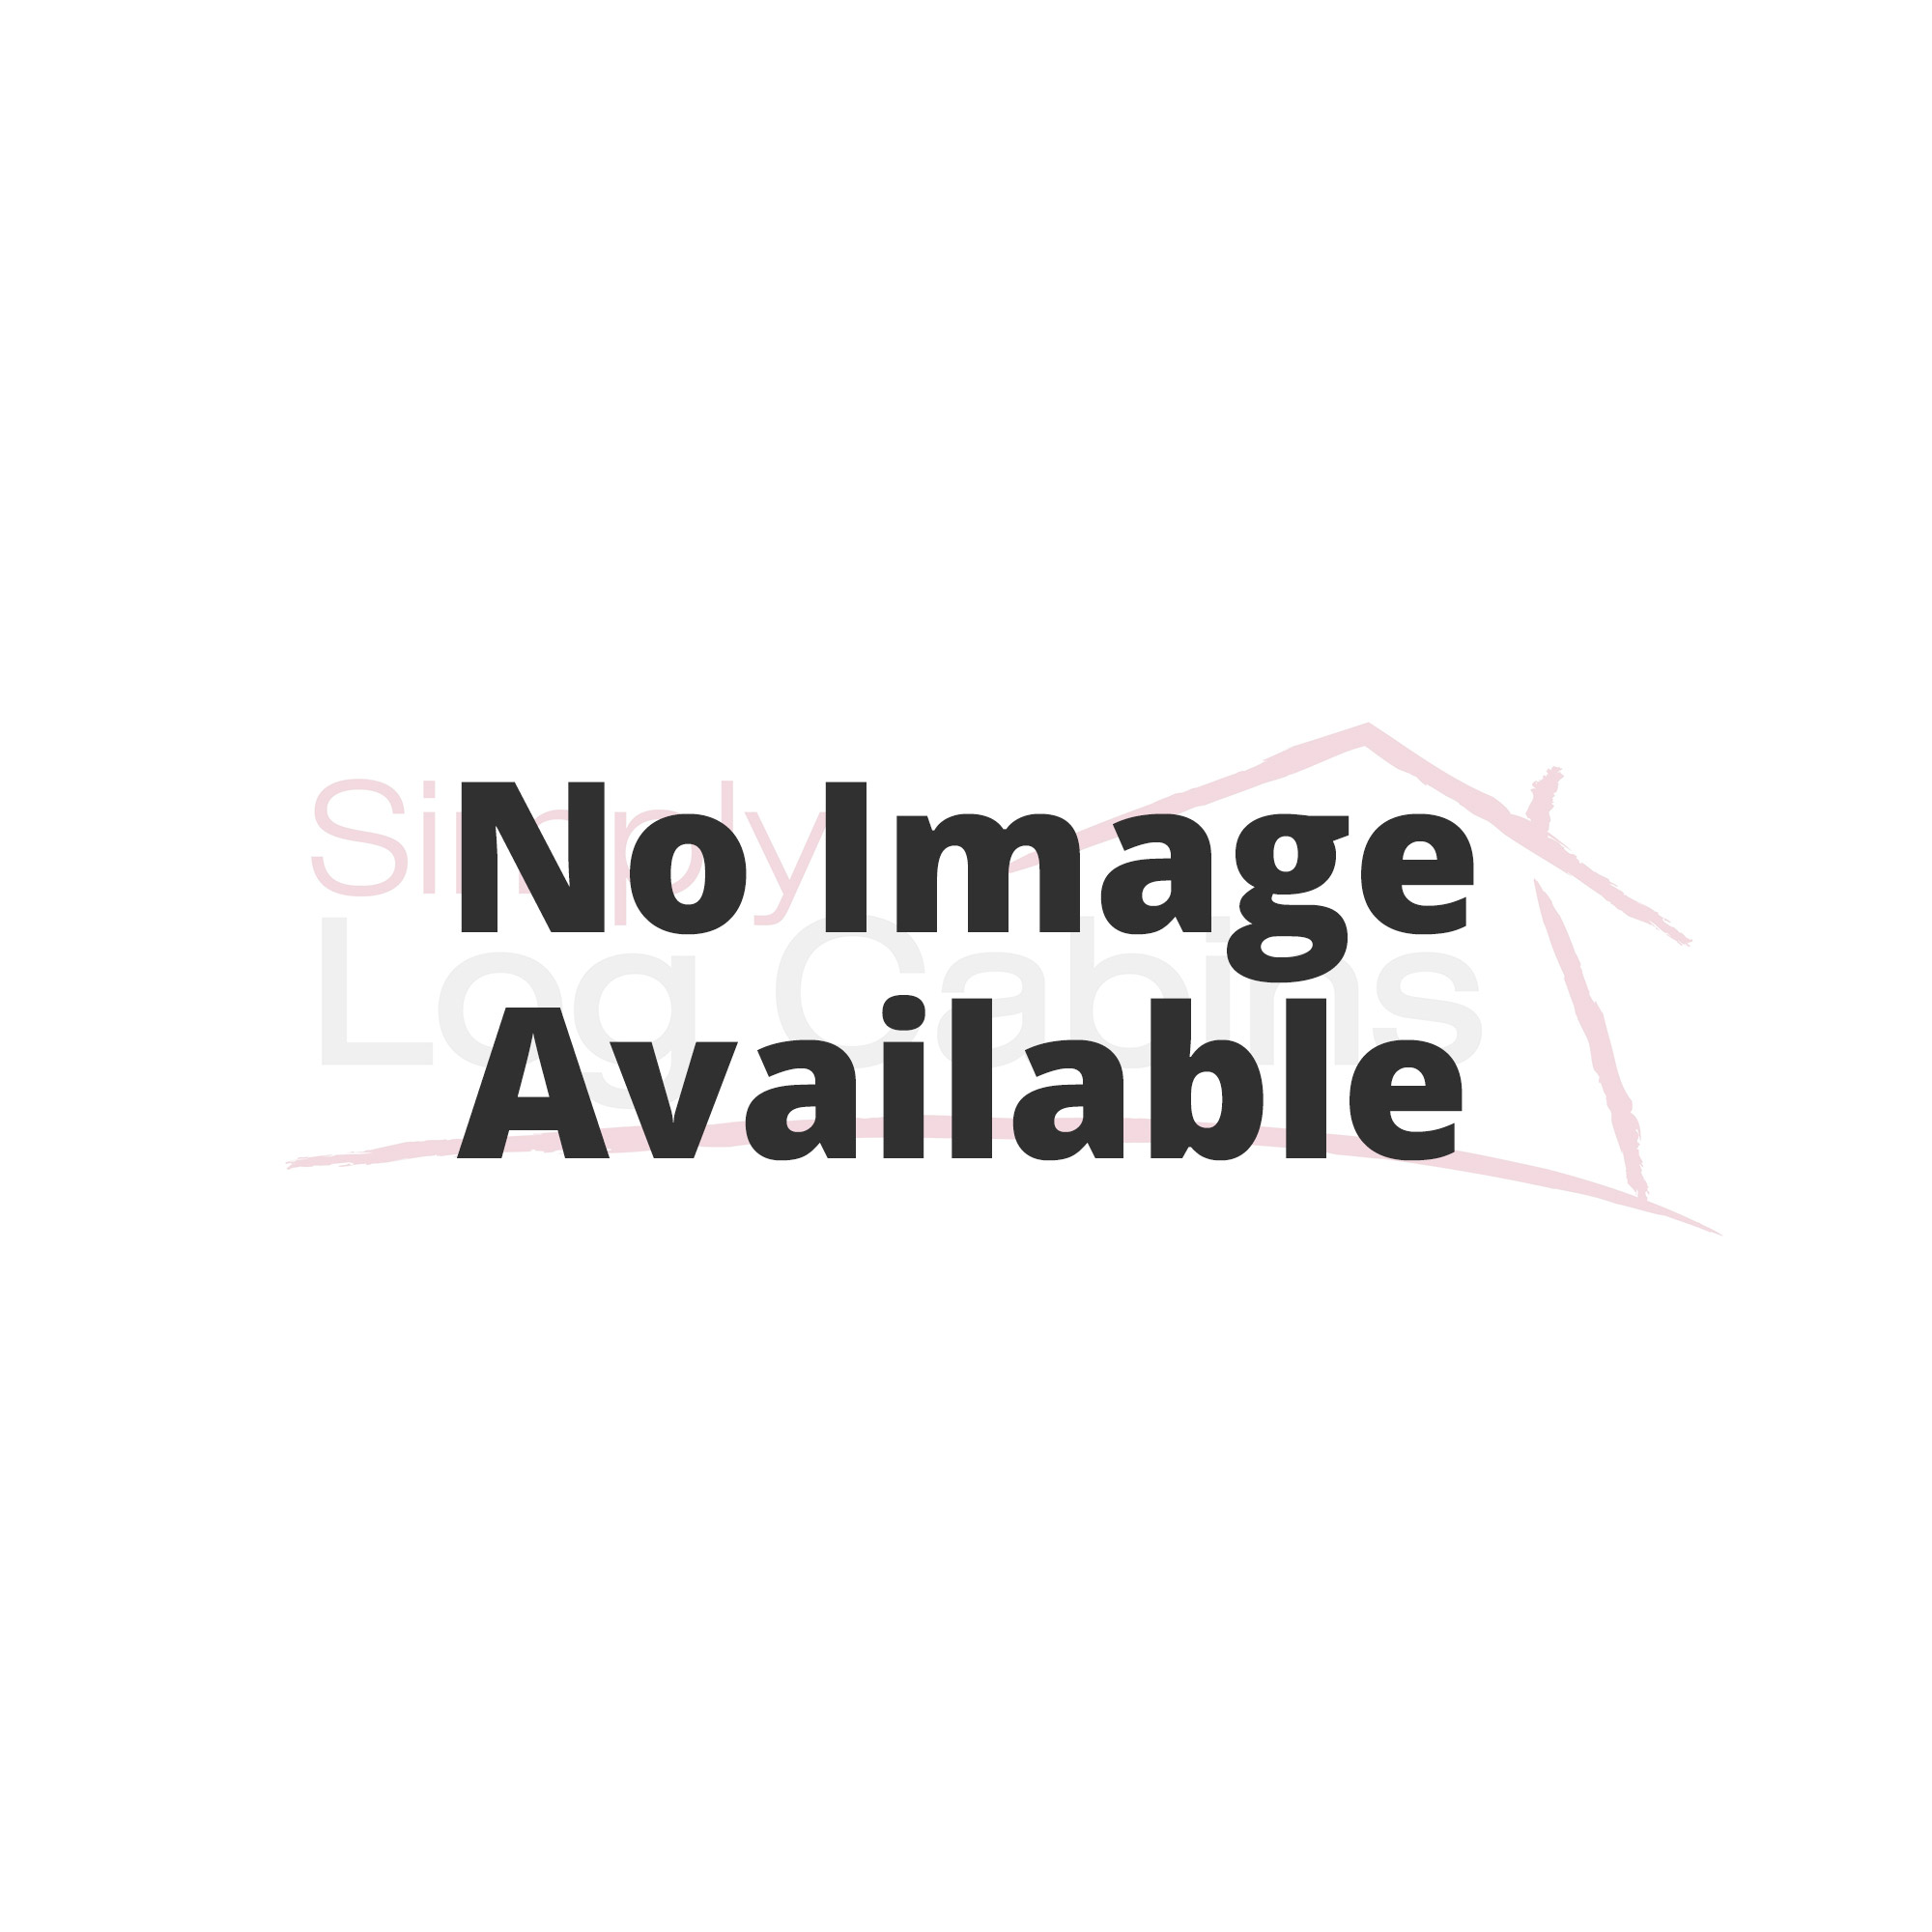 Garage 6x6m high quality wooden garages for sale simply log cabins